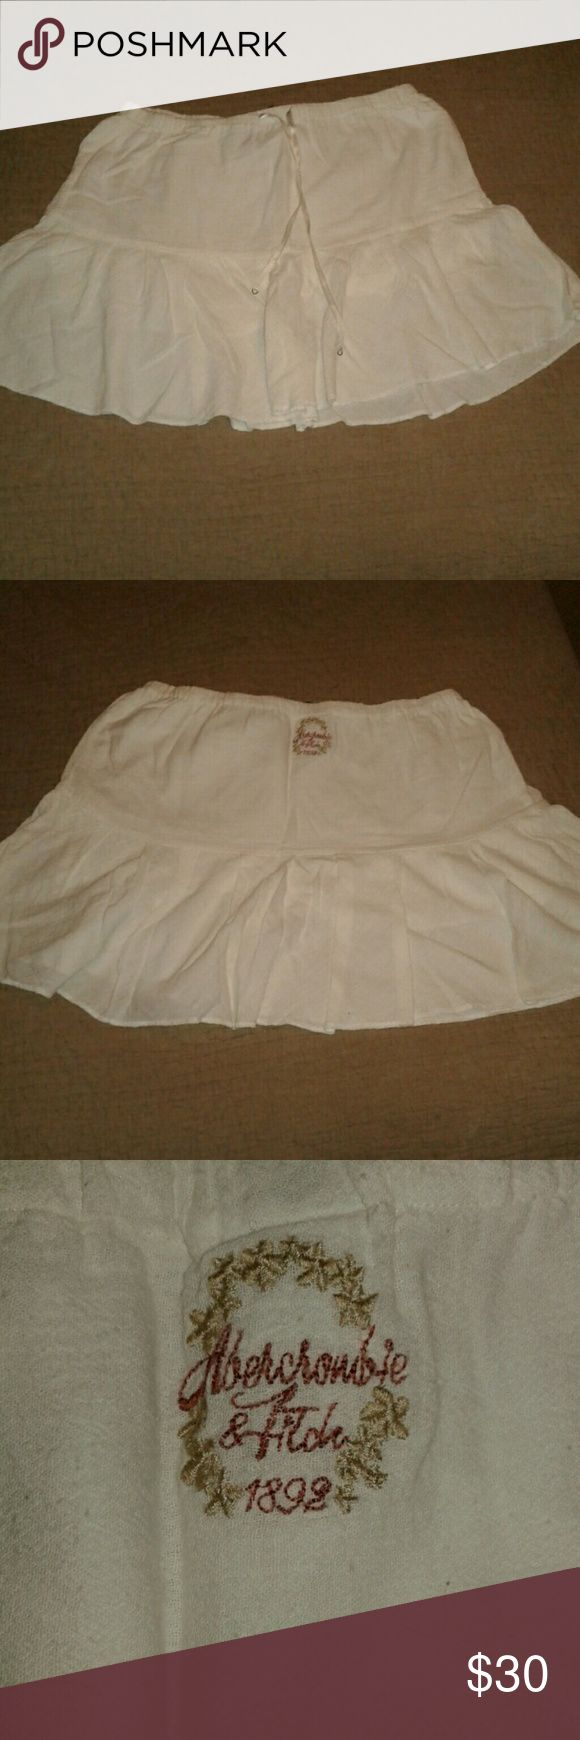 ABERCROMBIE AND FITCH skirt White peasant skirt. Size extra small. Abercrombie & Fitch Skirts Mini